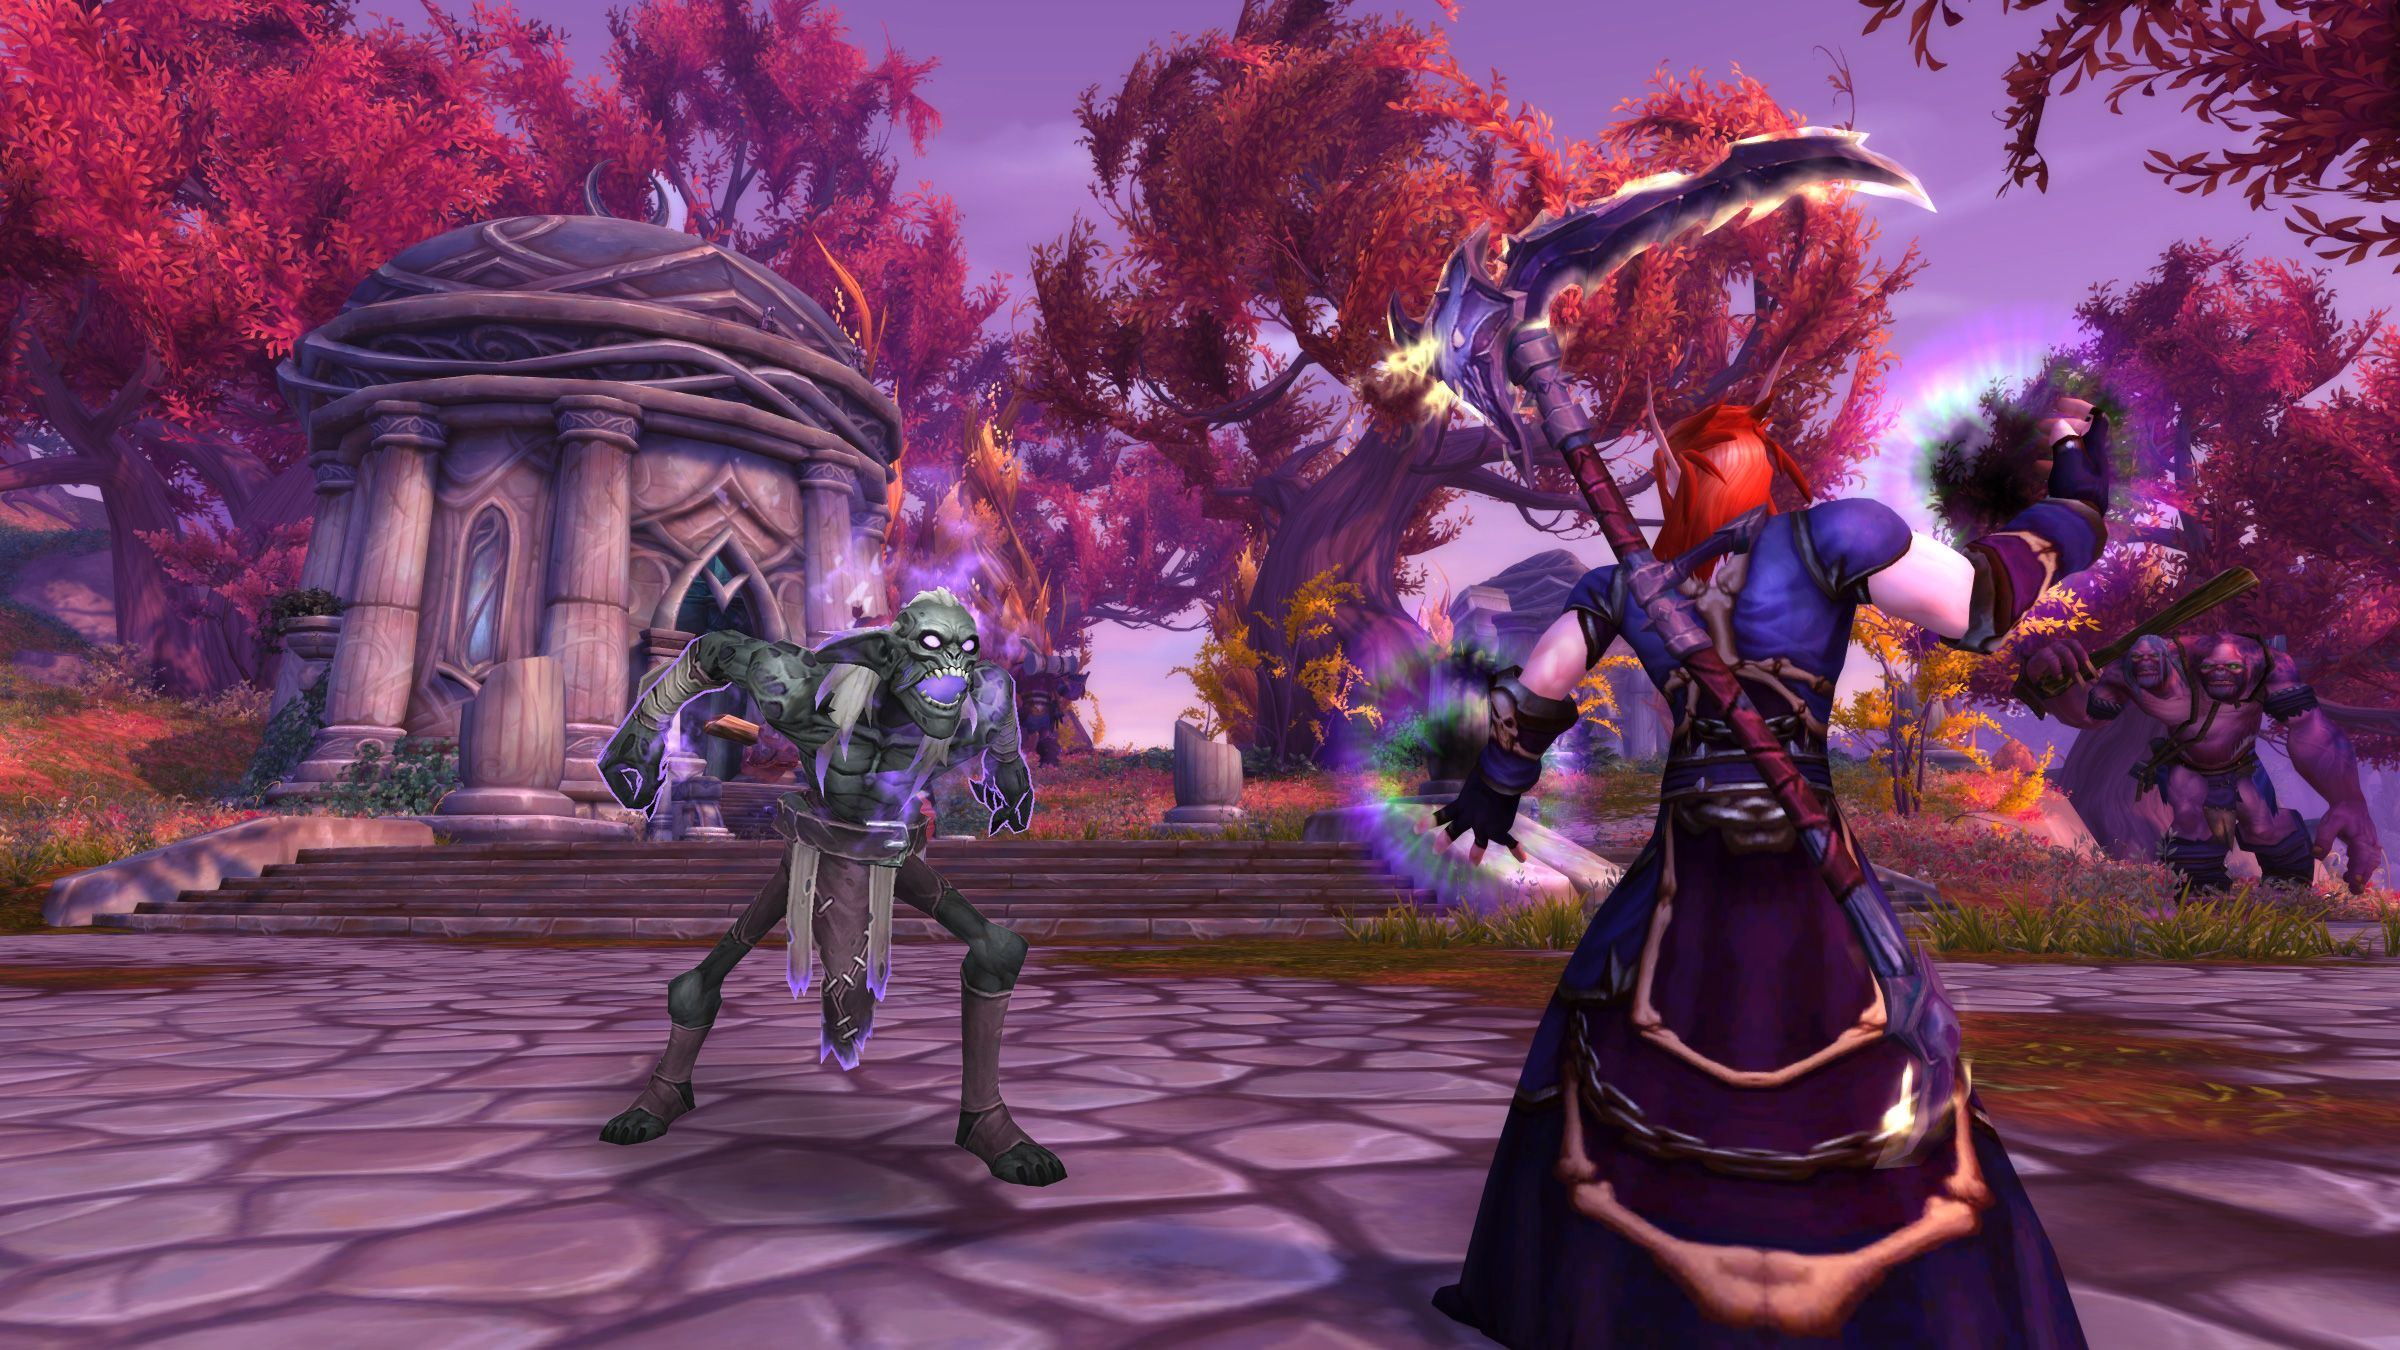 50% more Bonus Rep from World Quests this week  5000 Orderhall Resources #worldofwarcraft #blizzard #Hearthstone #wow #Warcraft #BlizzardCS #gaming